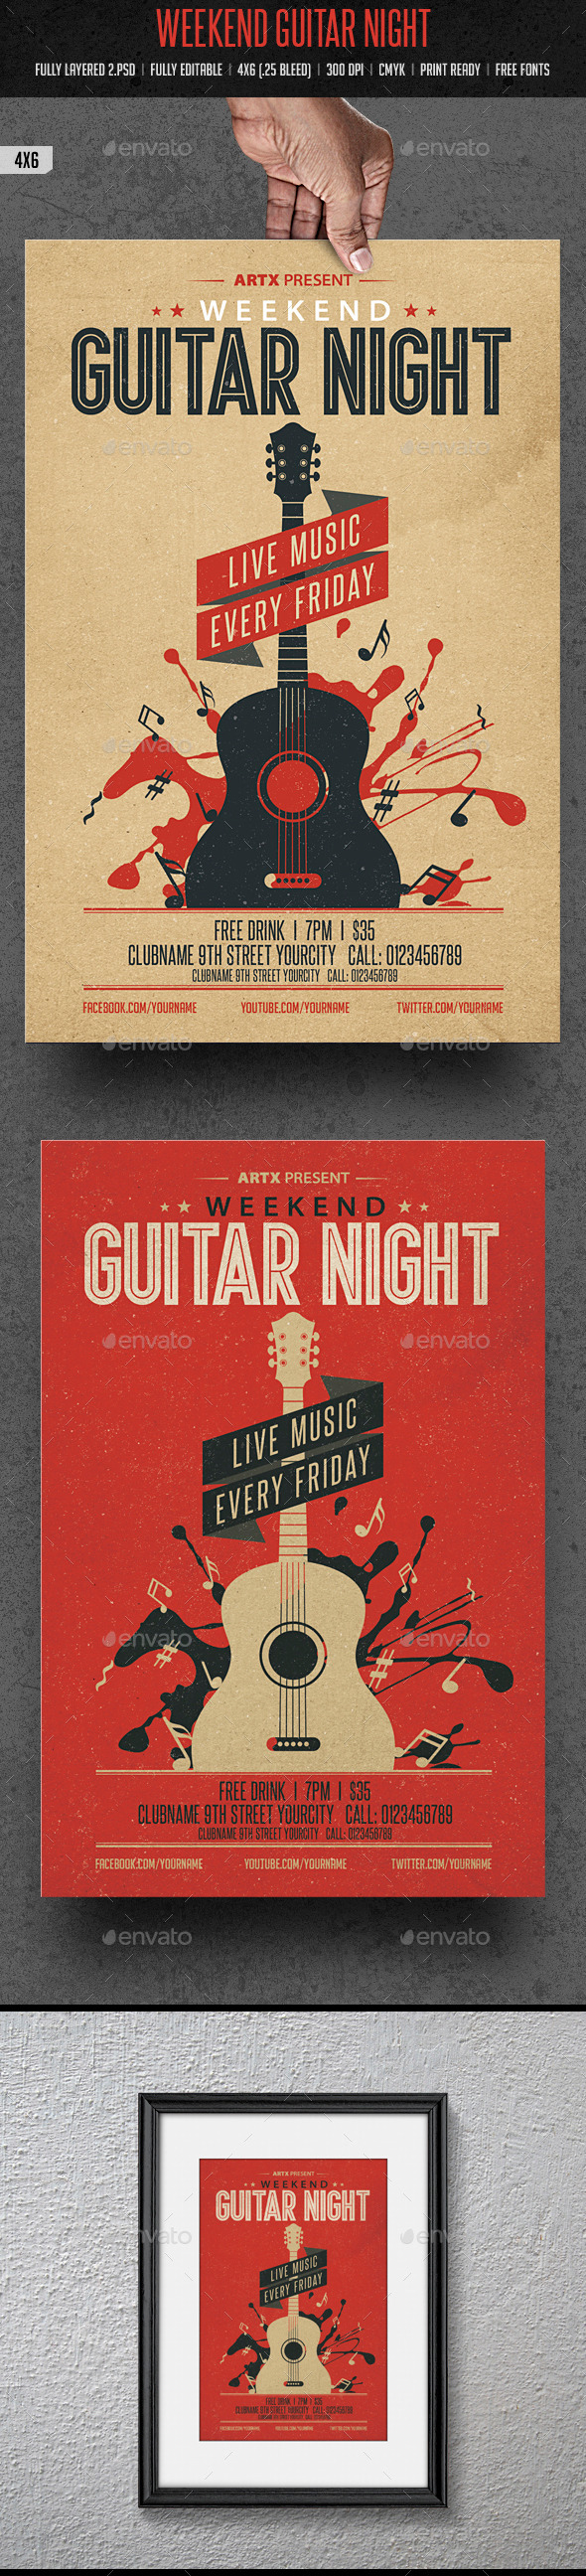 GraphicRiver Weekend Guitar Night 10111242